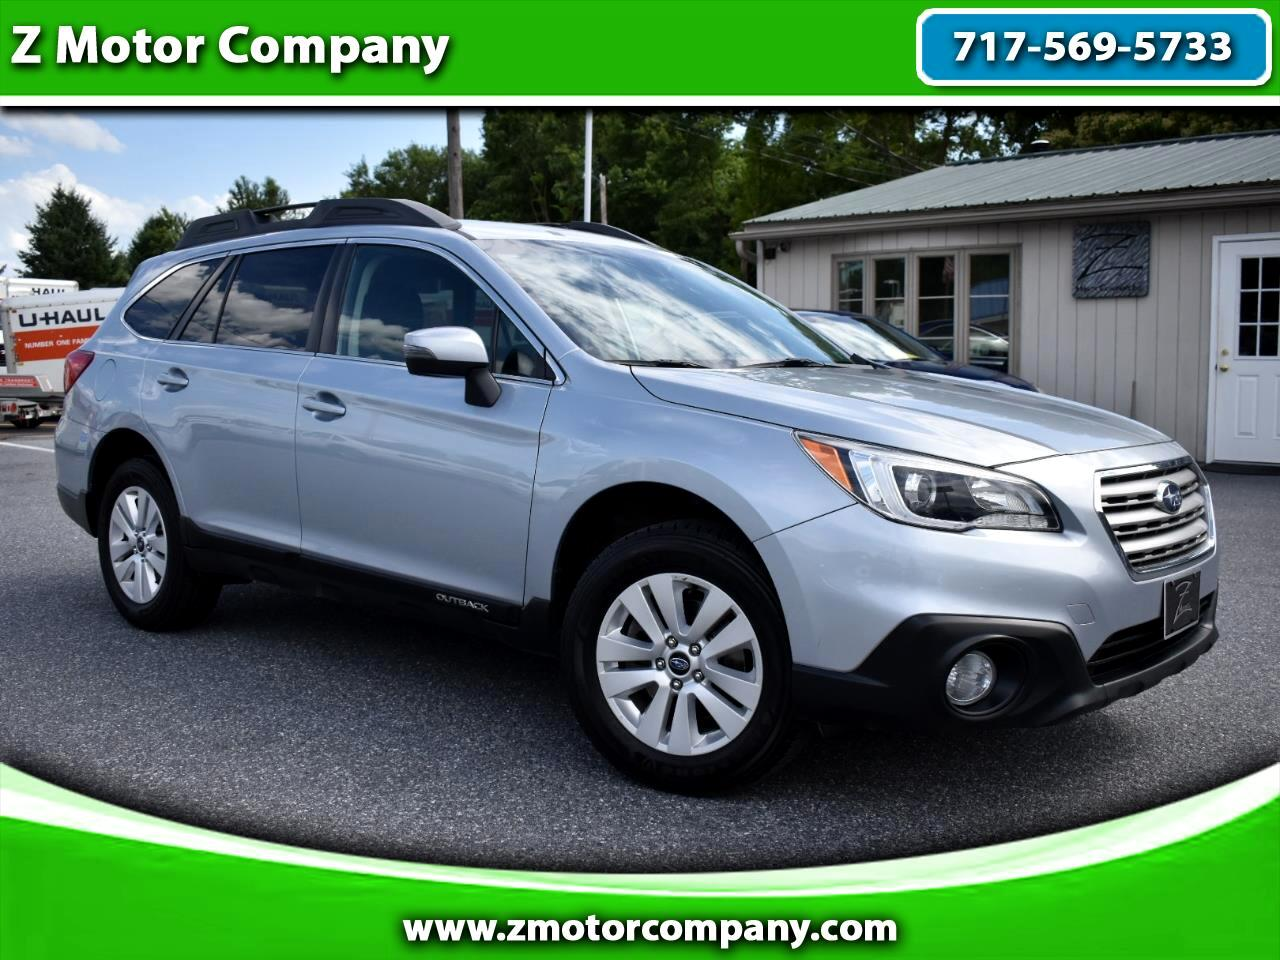 2017 Subaru Outback 2.5i Premium w/ Eyesight Pkg